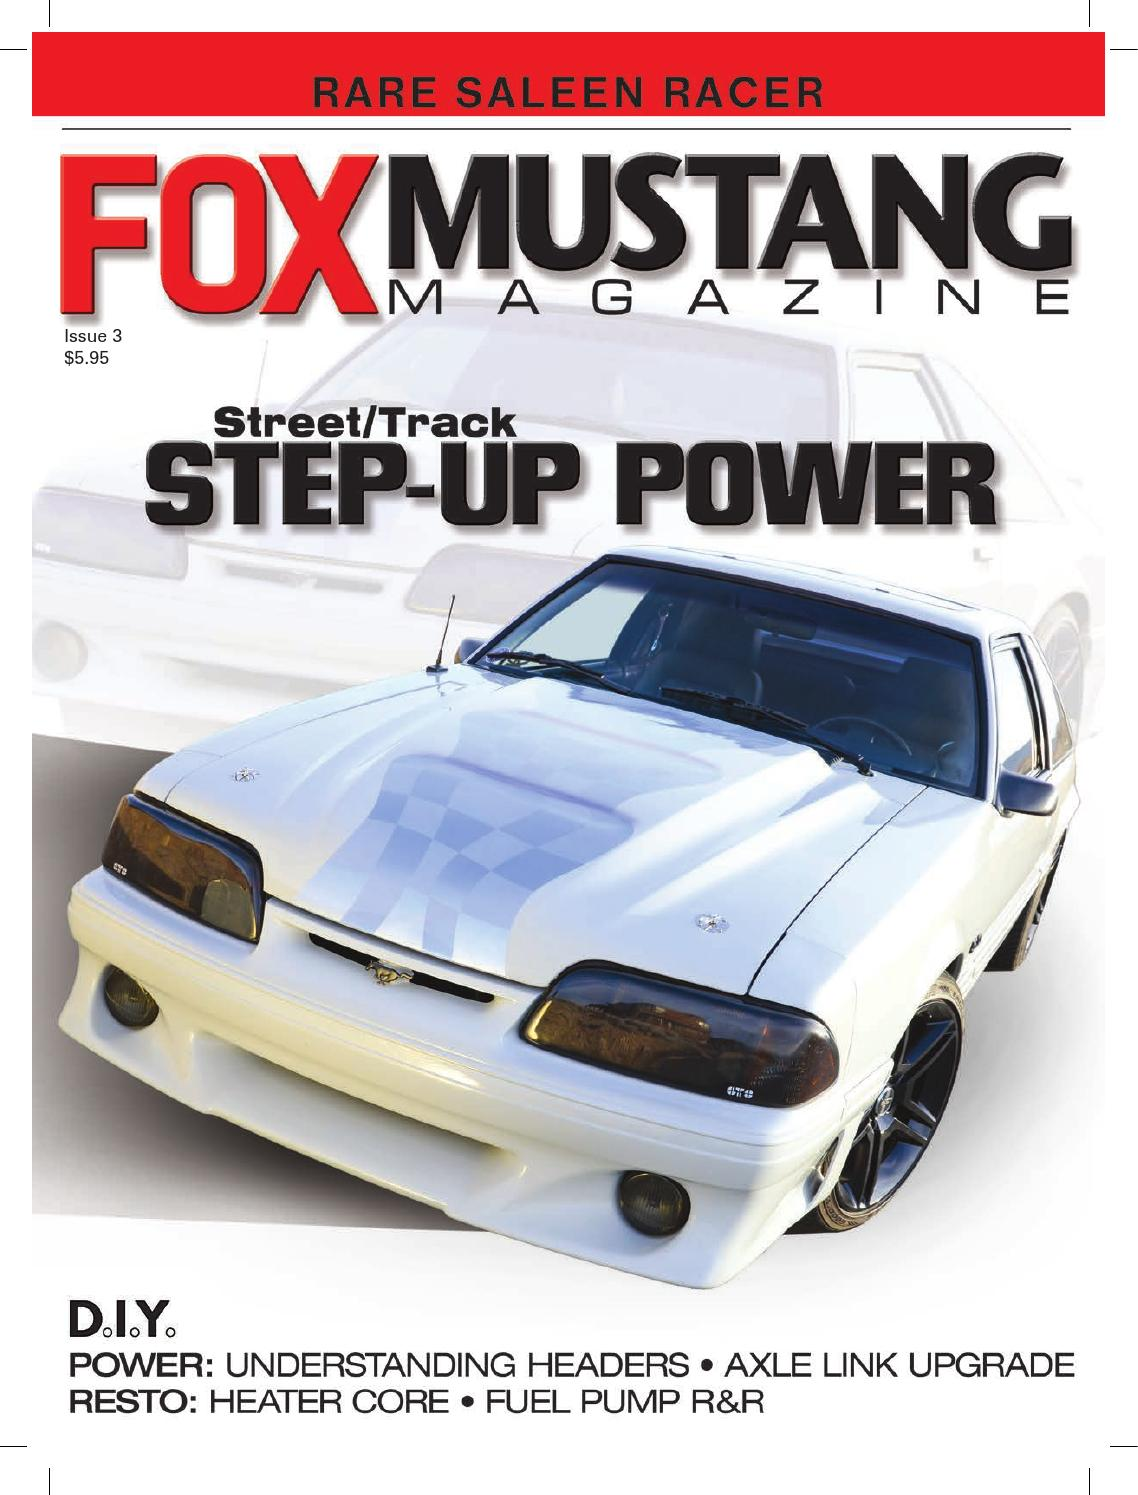 Fox Mustang Magazine Issue 3 By Issuu 1988 Fog Lights